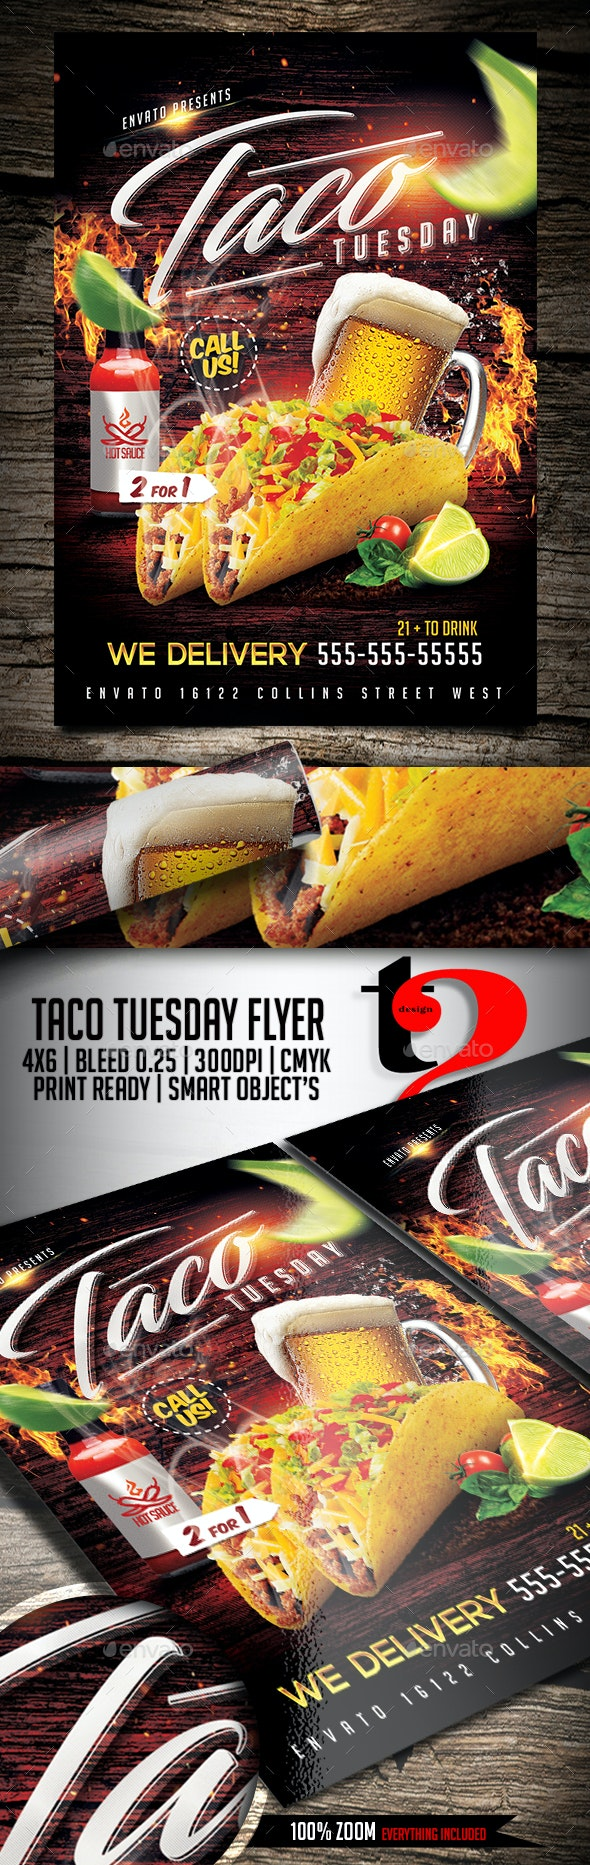 Taco Tuesday Flyer Template - Clubs & Parties Events